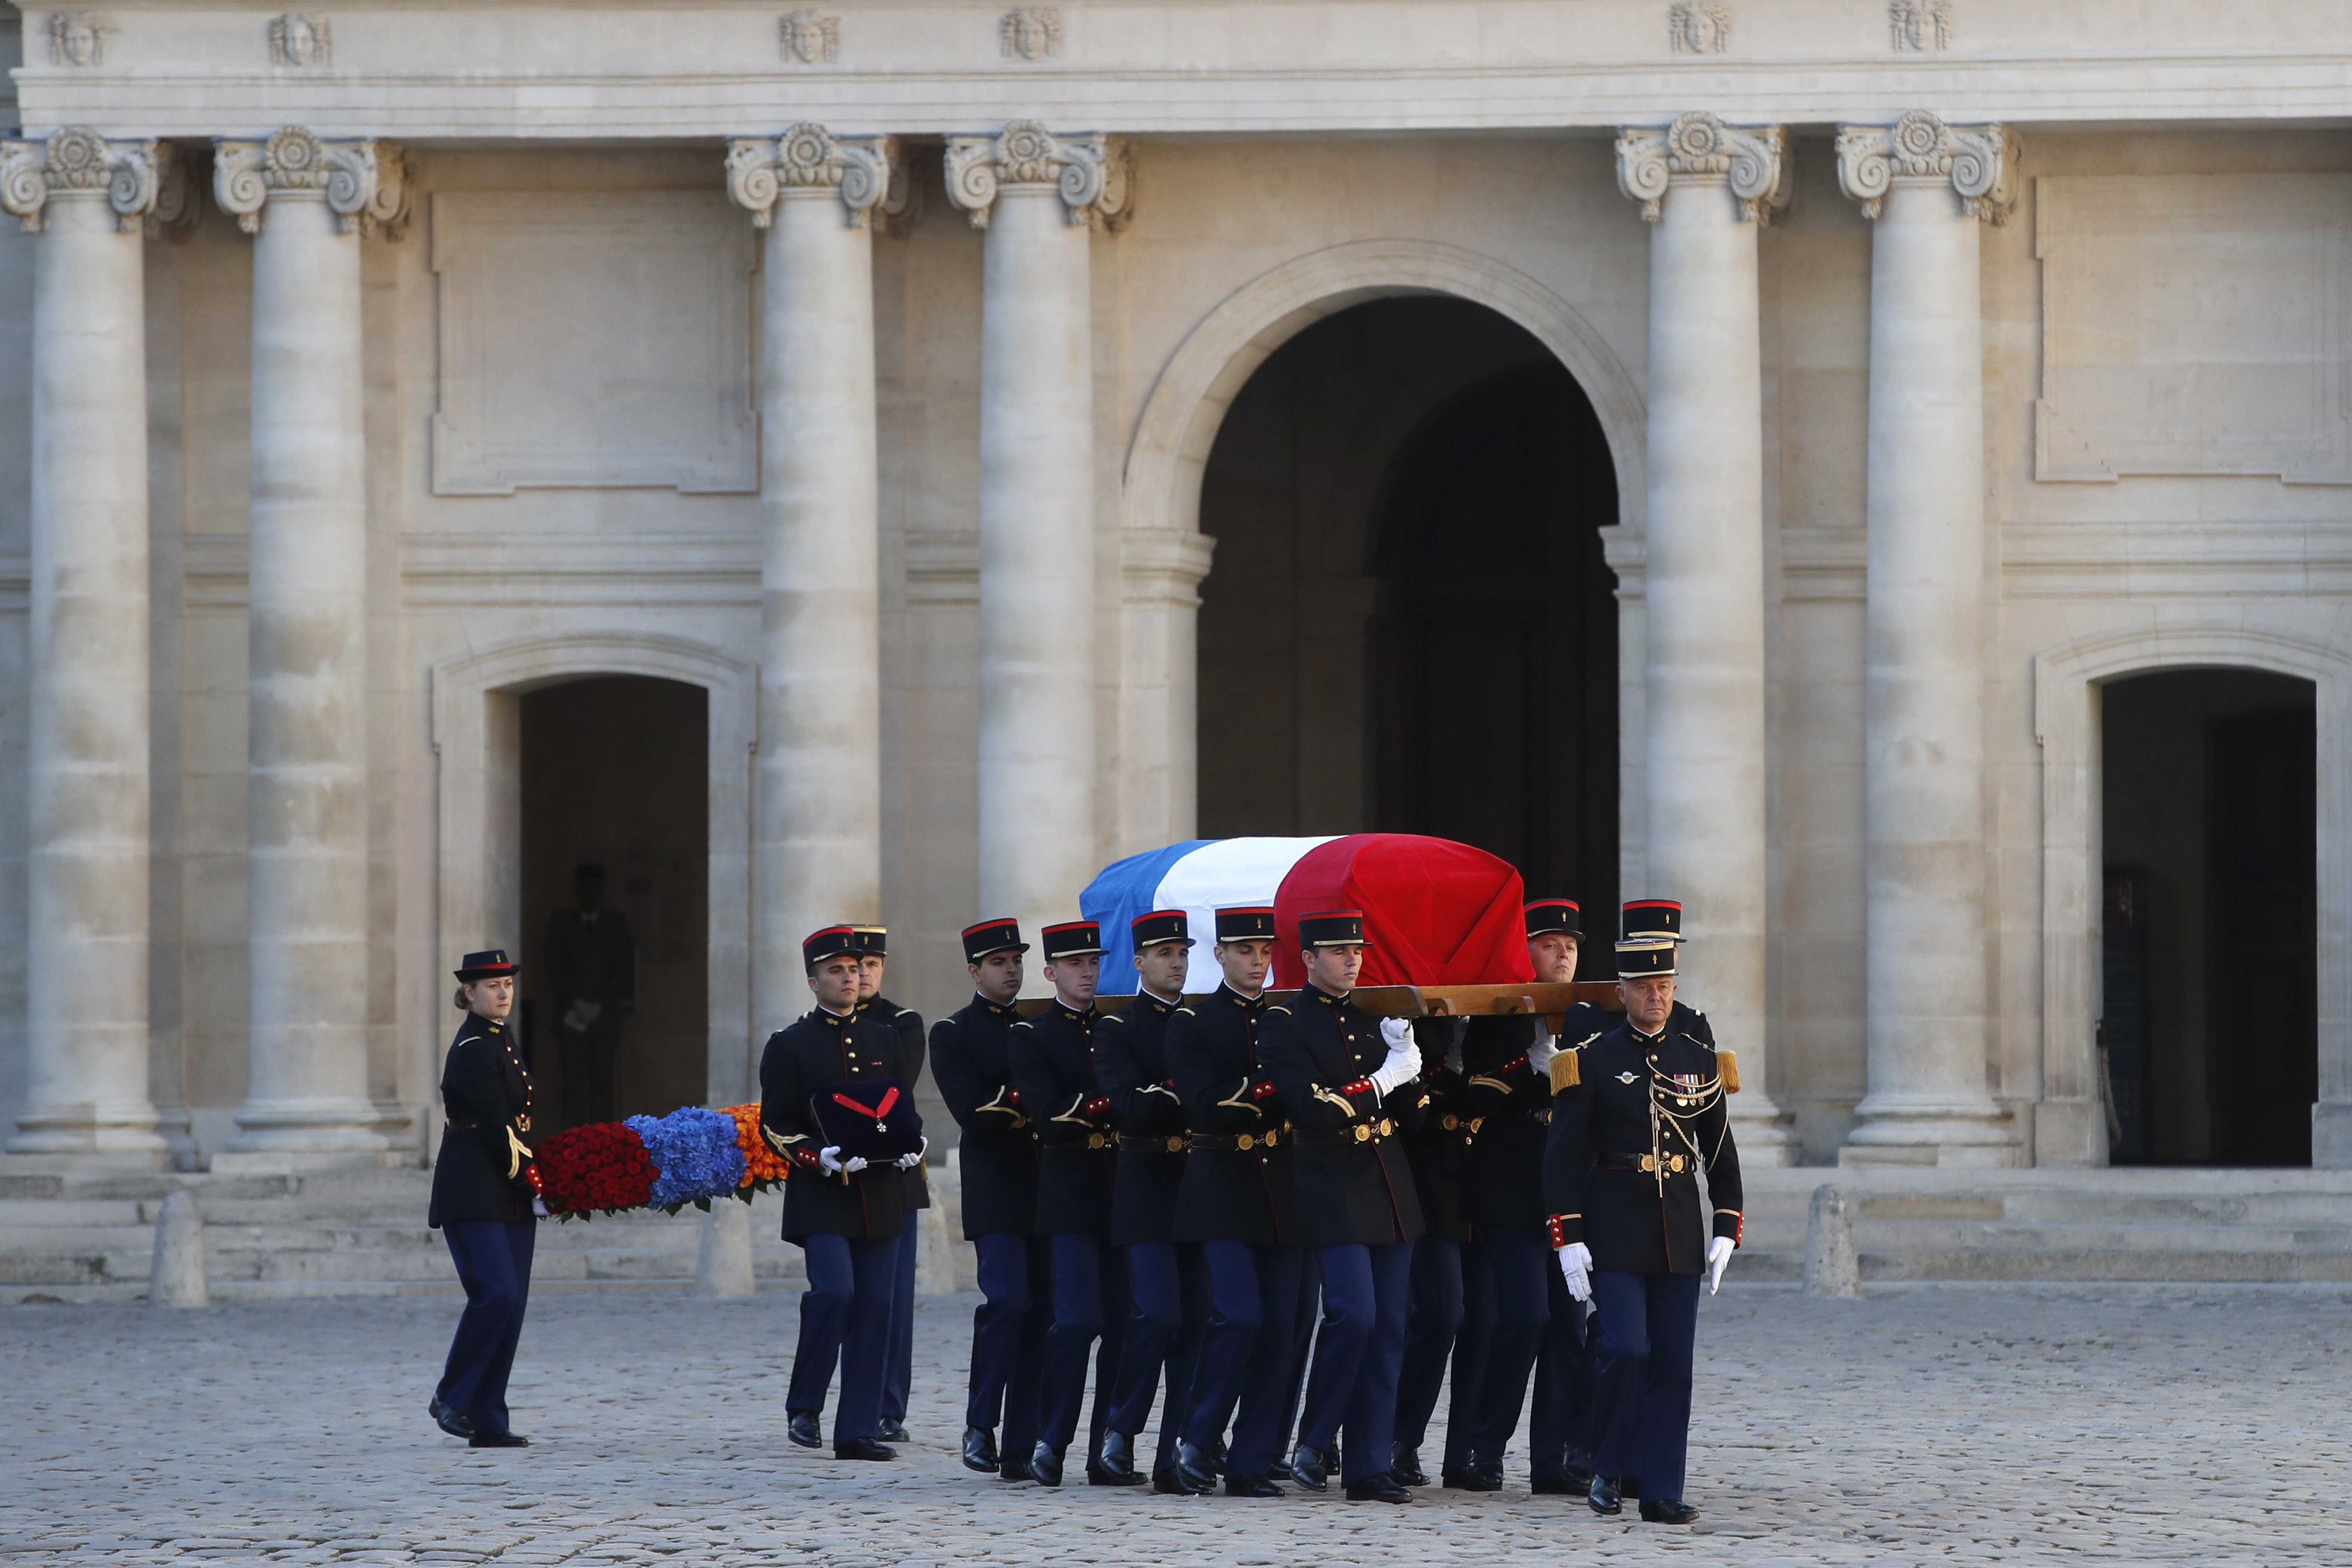 Soldiers carry the coffin of Charles Aznavour during a ceremony in Paris